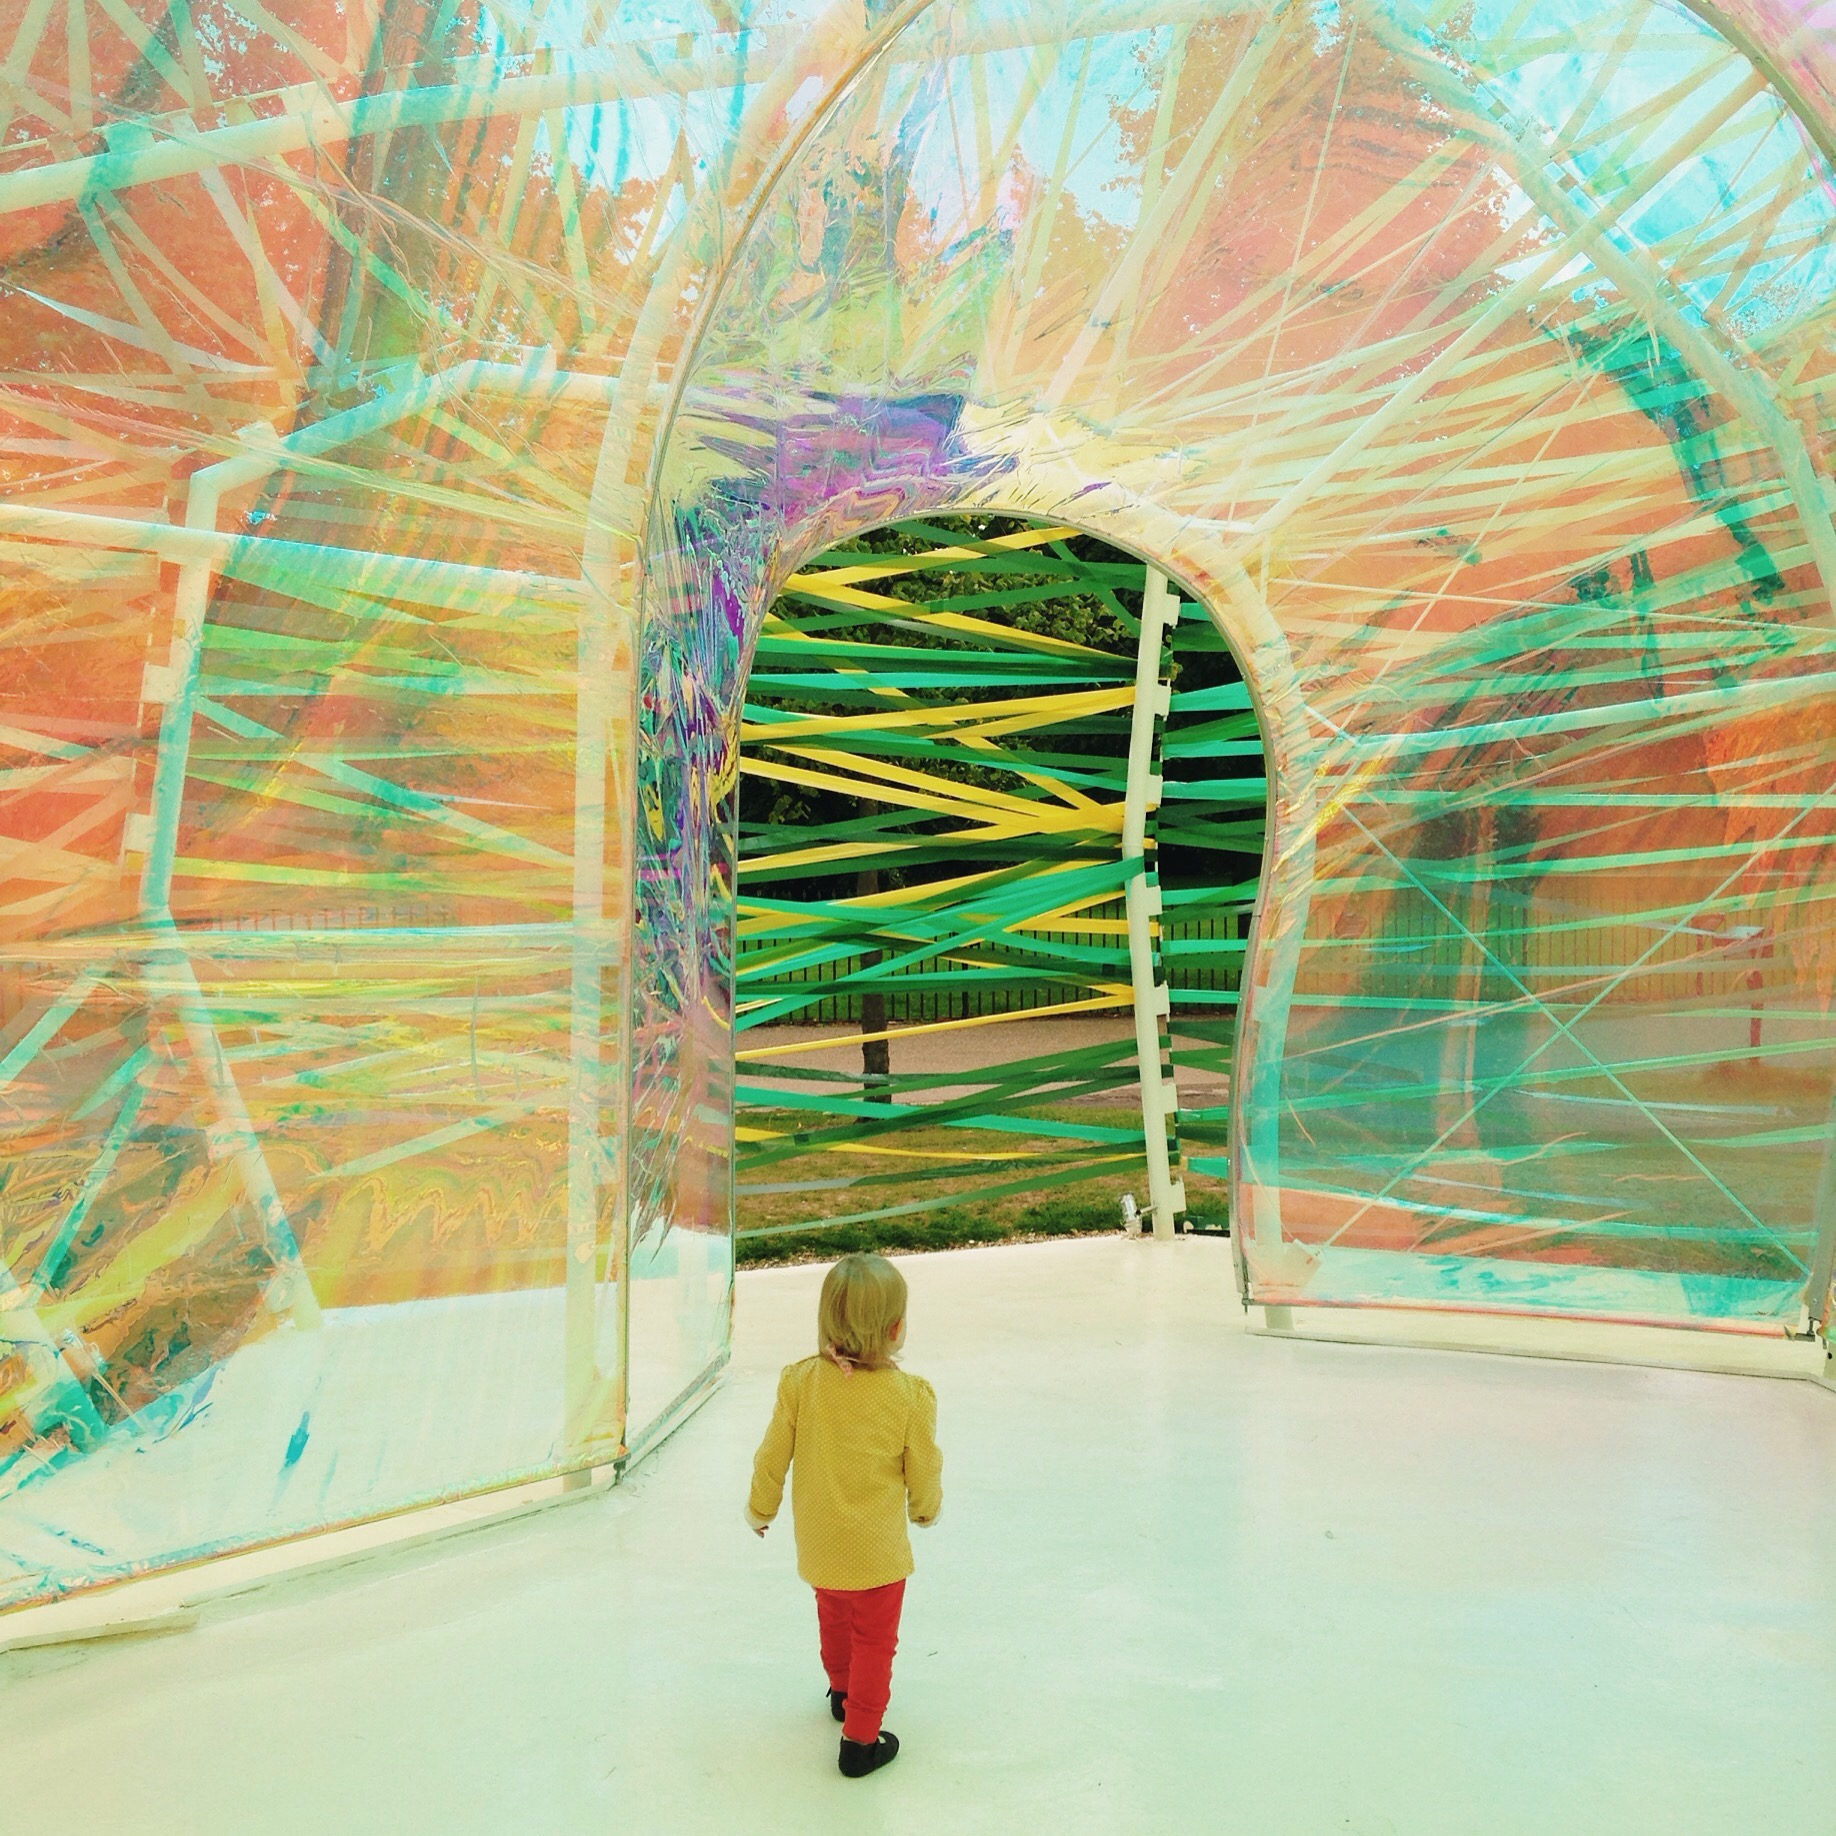 The photo featured by    @vsco    that started it all - my youngest daughter Esme at the Serpentine gallery in Hyde Park. Ironically it had no VSCO filter applied and was completely unedited!